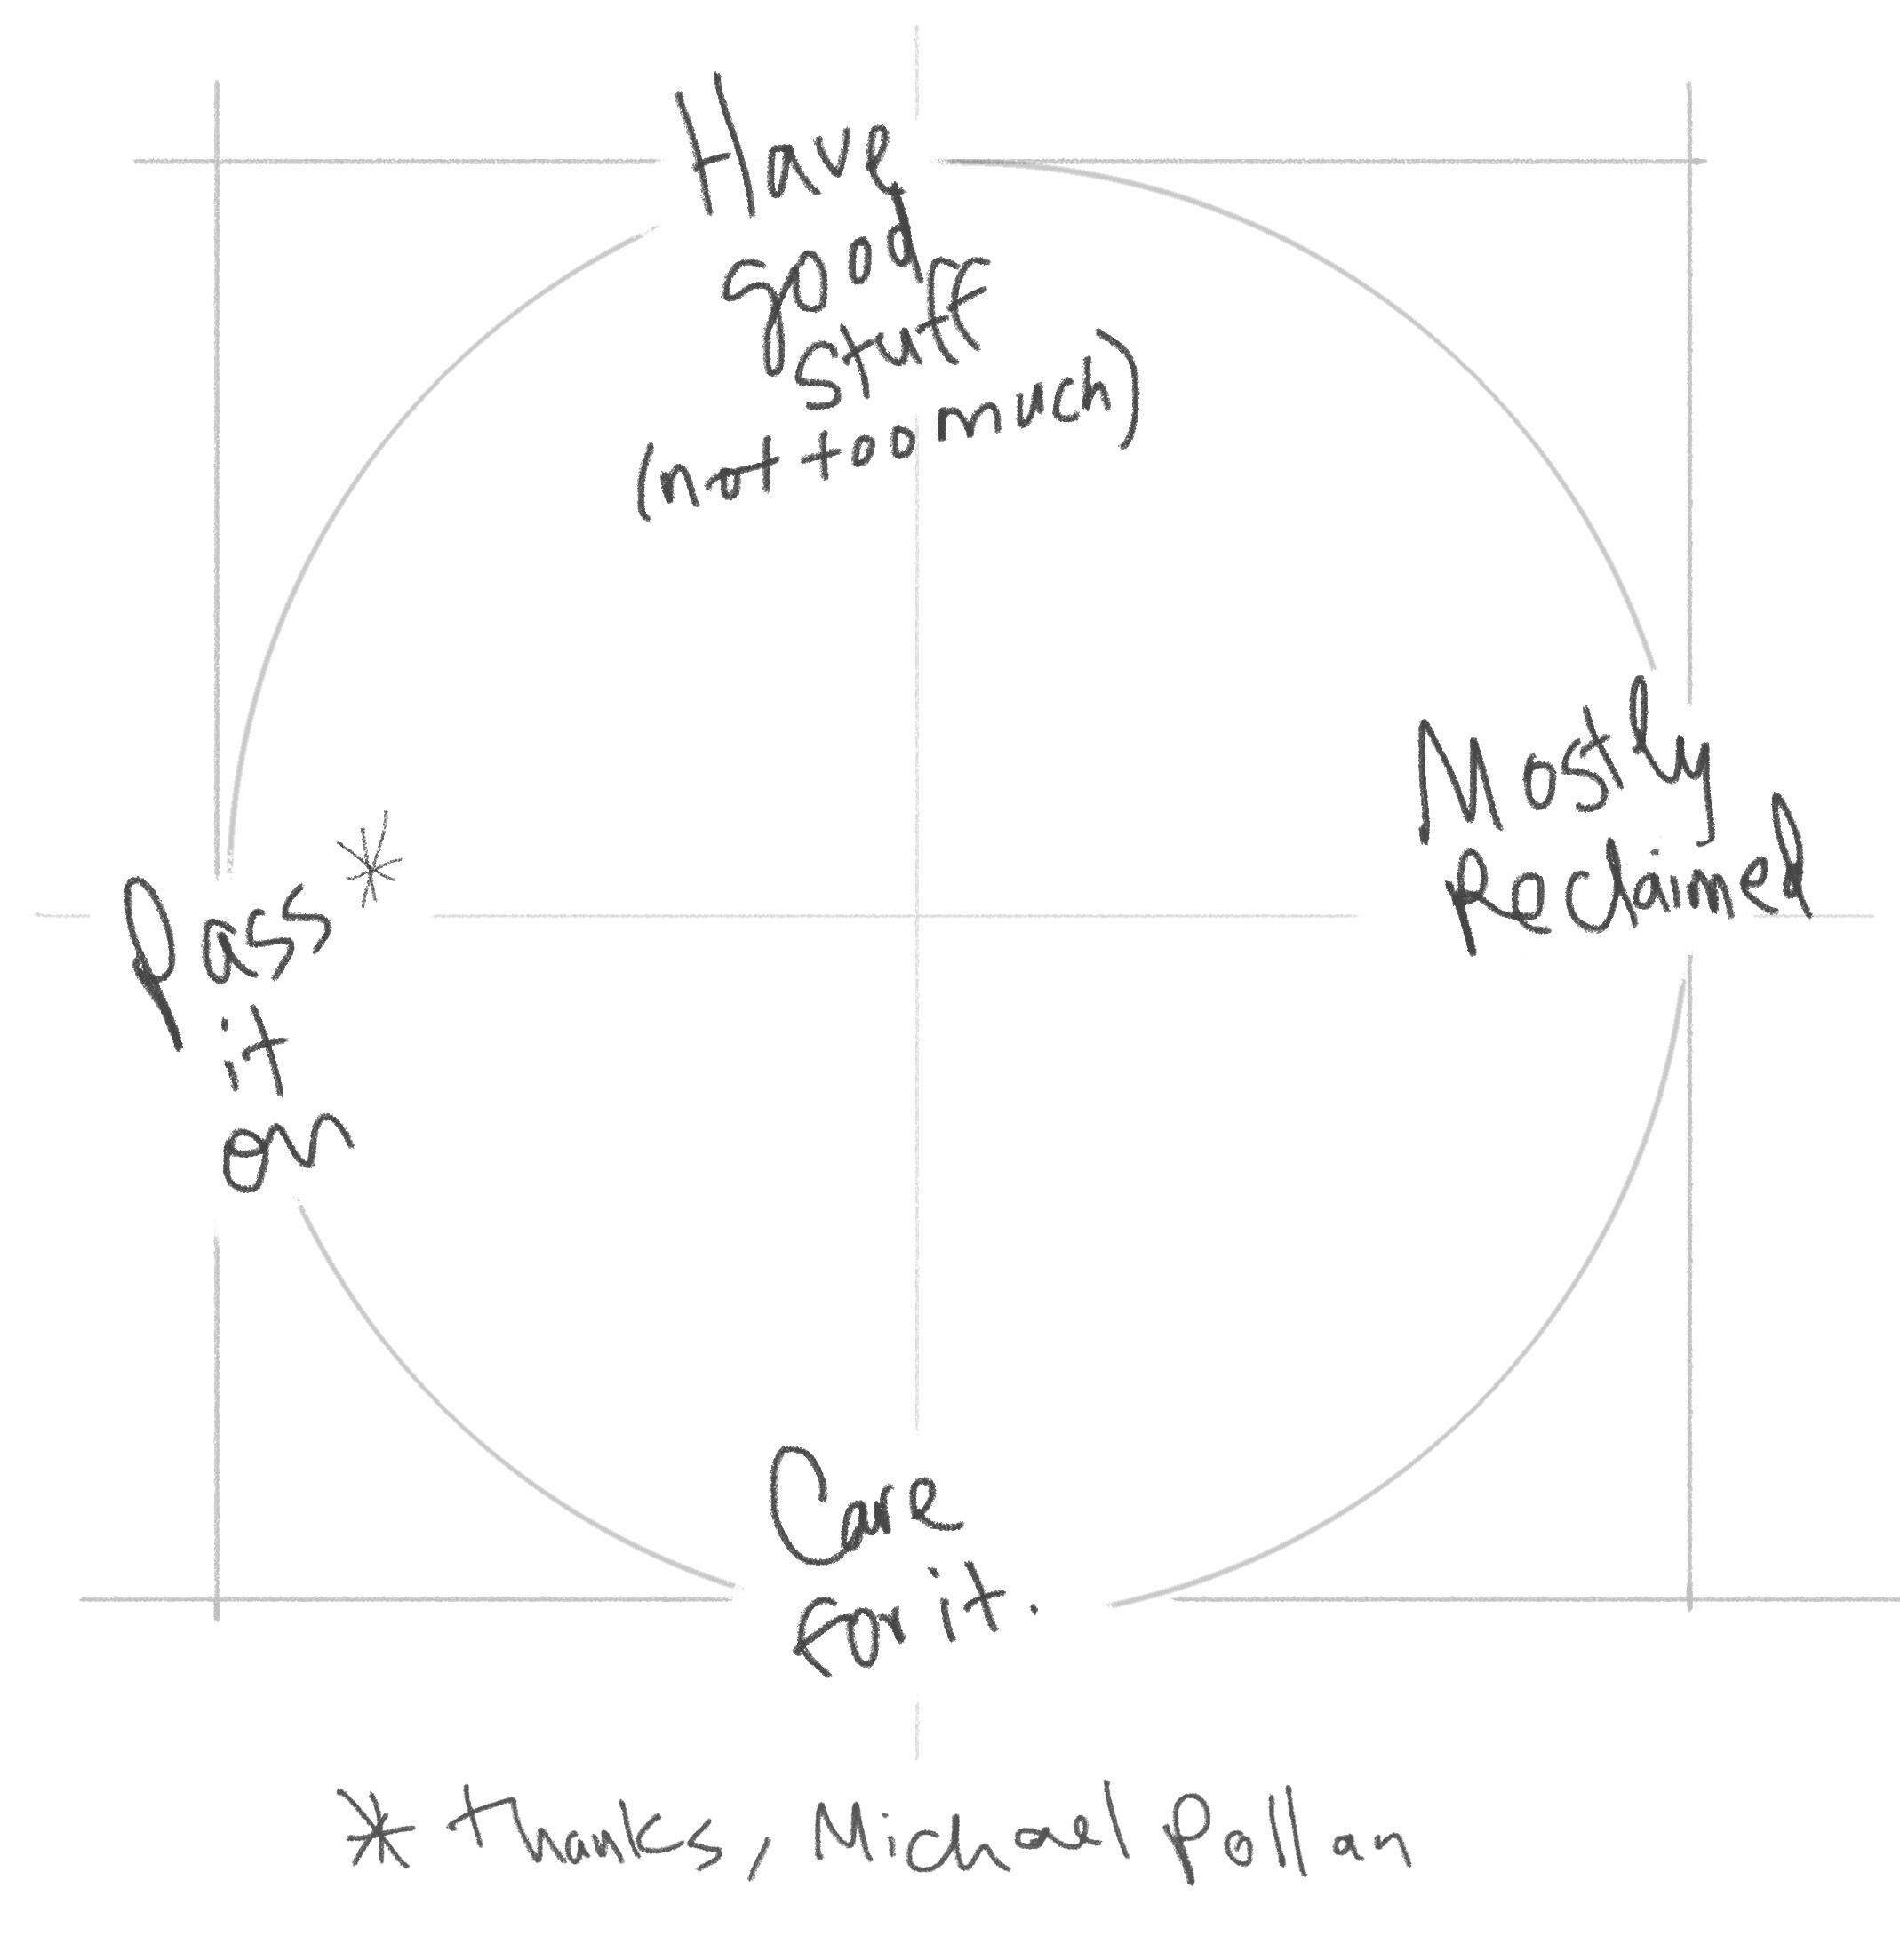 WE'VE LEARNED A LOT from the Food Movement. We don't need to reinvent the wheel: Have good stuff (not too much), mostly reclaimed. Care for it. Pass it on.* *Thanks, Michael Pollan.